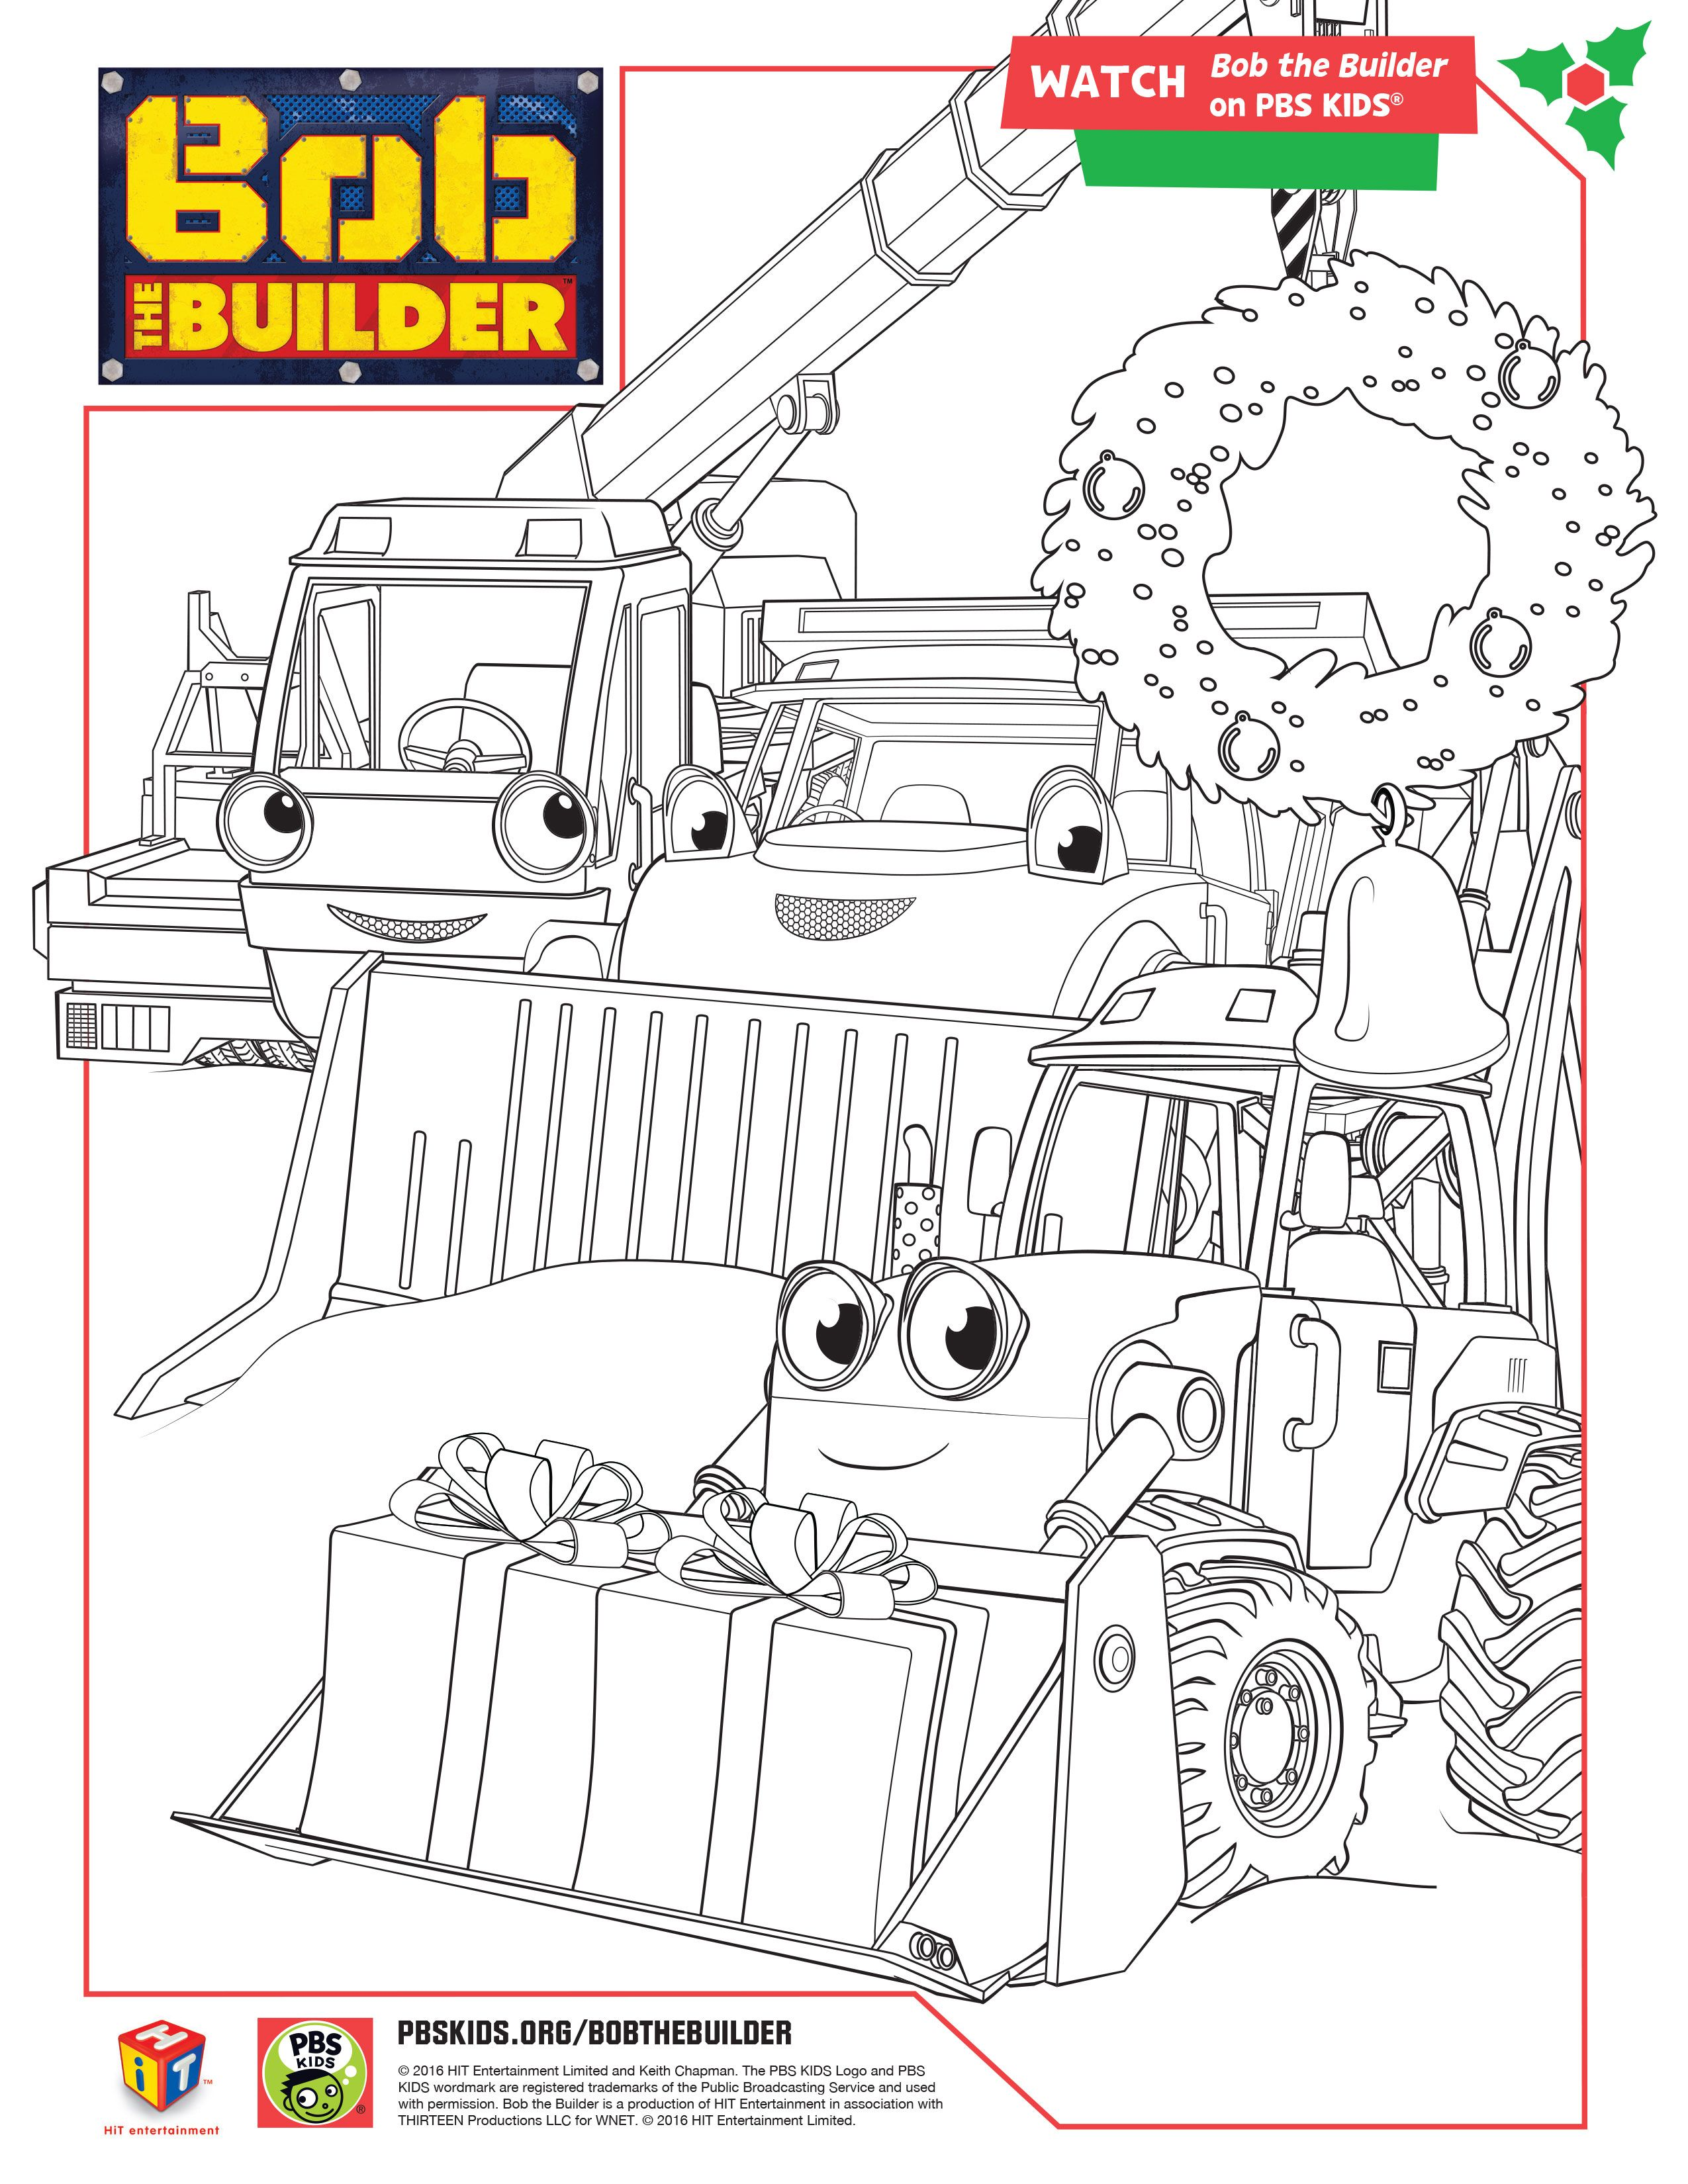 Bob The Builder Holiday Coloring Pages Bobthebuilder